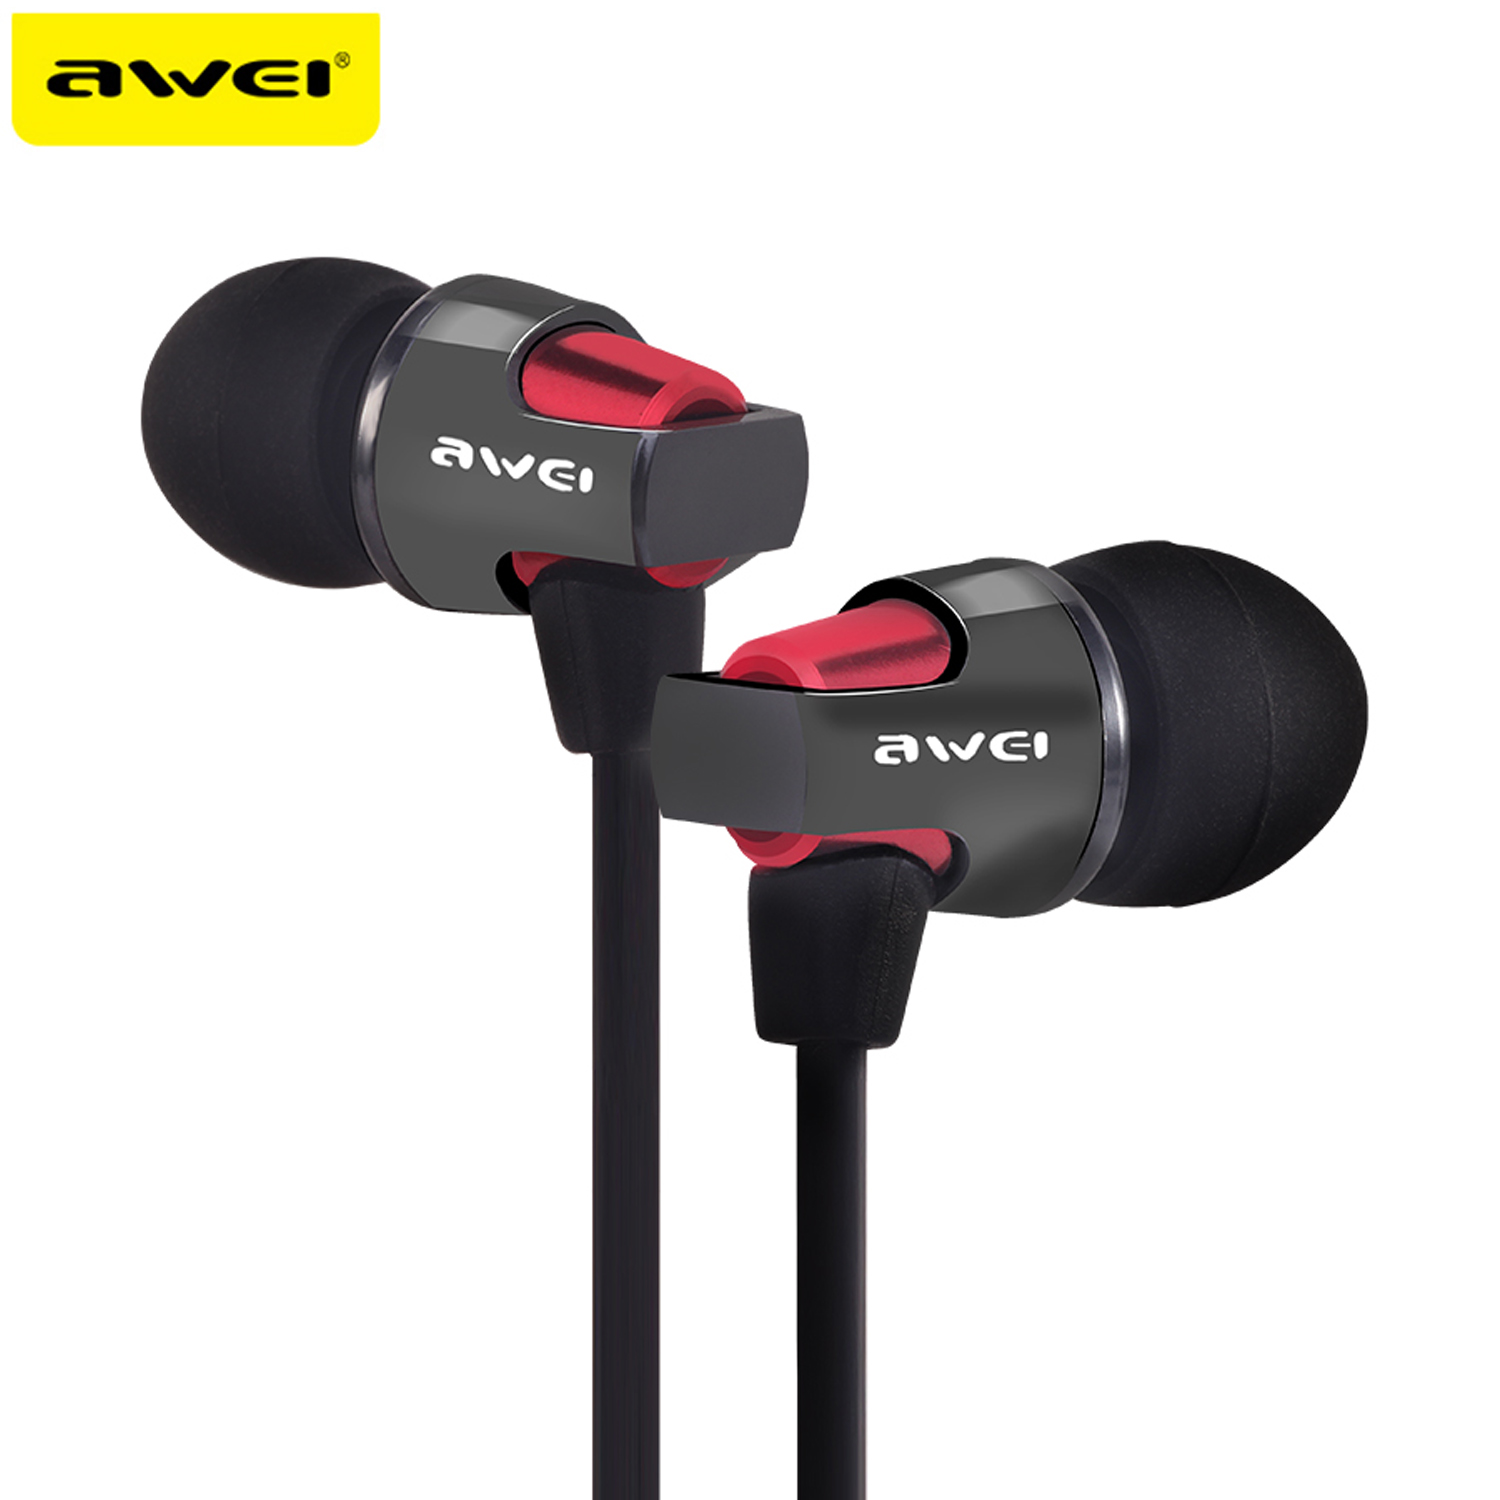 AWEI ES-860HI Super Bass Sound Headphones Stereo Earphones Metal Headset In-Ear fone de ouvido Auriculares Kulaklik For Phones awei es 860hi super bass sound headphones stereo earphones metal headset in ear fone de ouvido auriculares kulaklik for phones